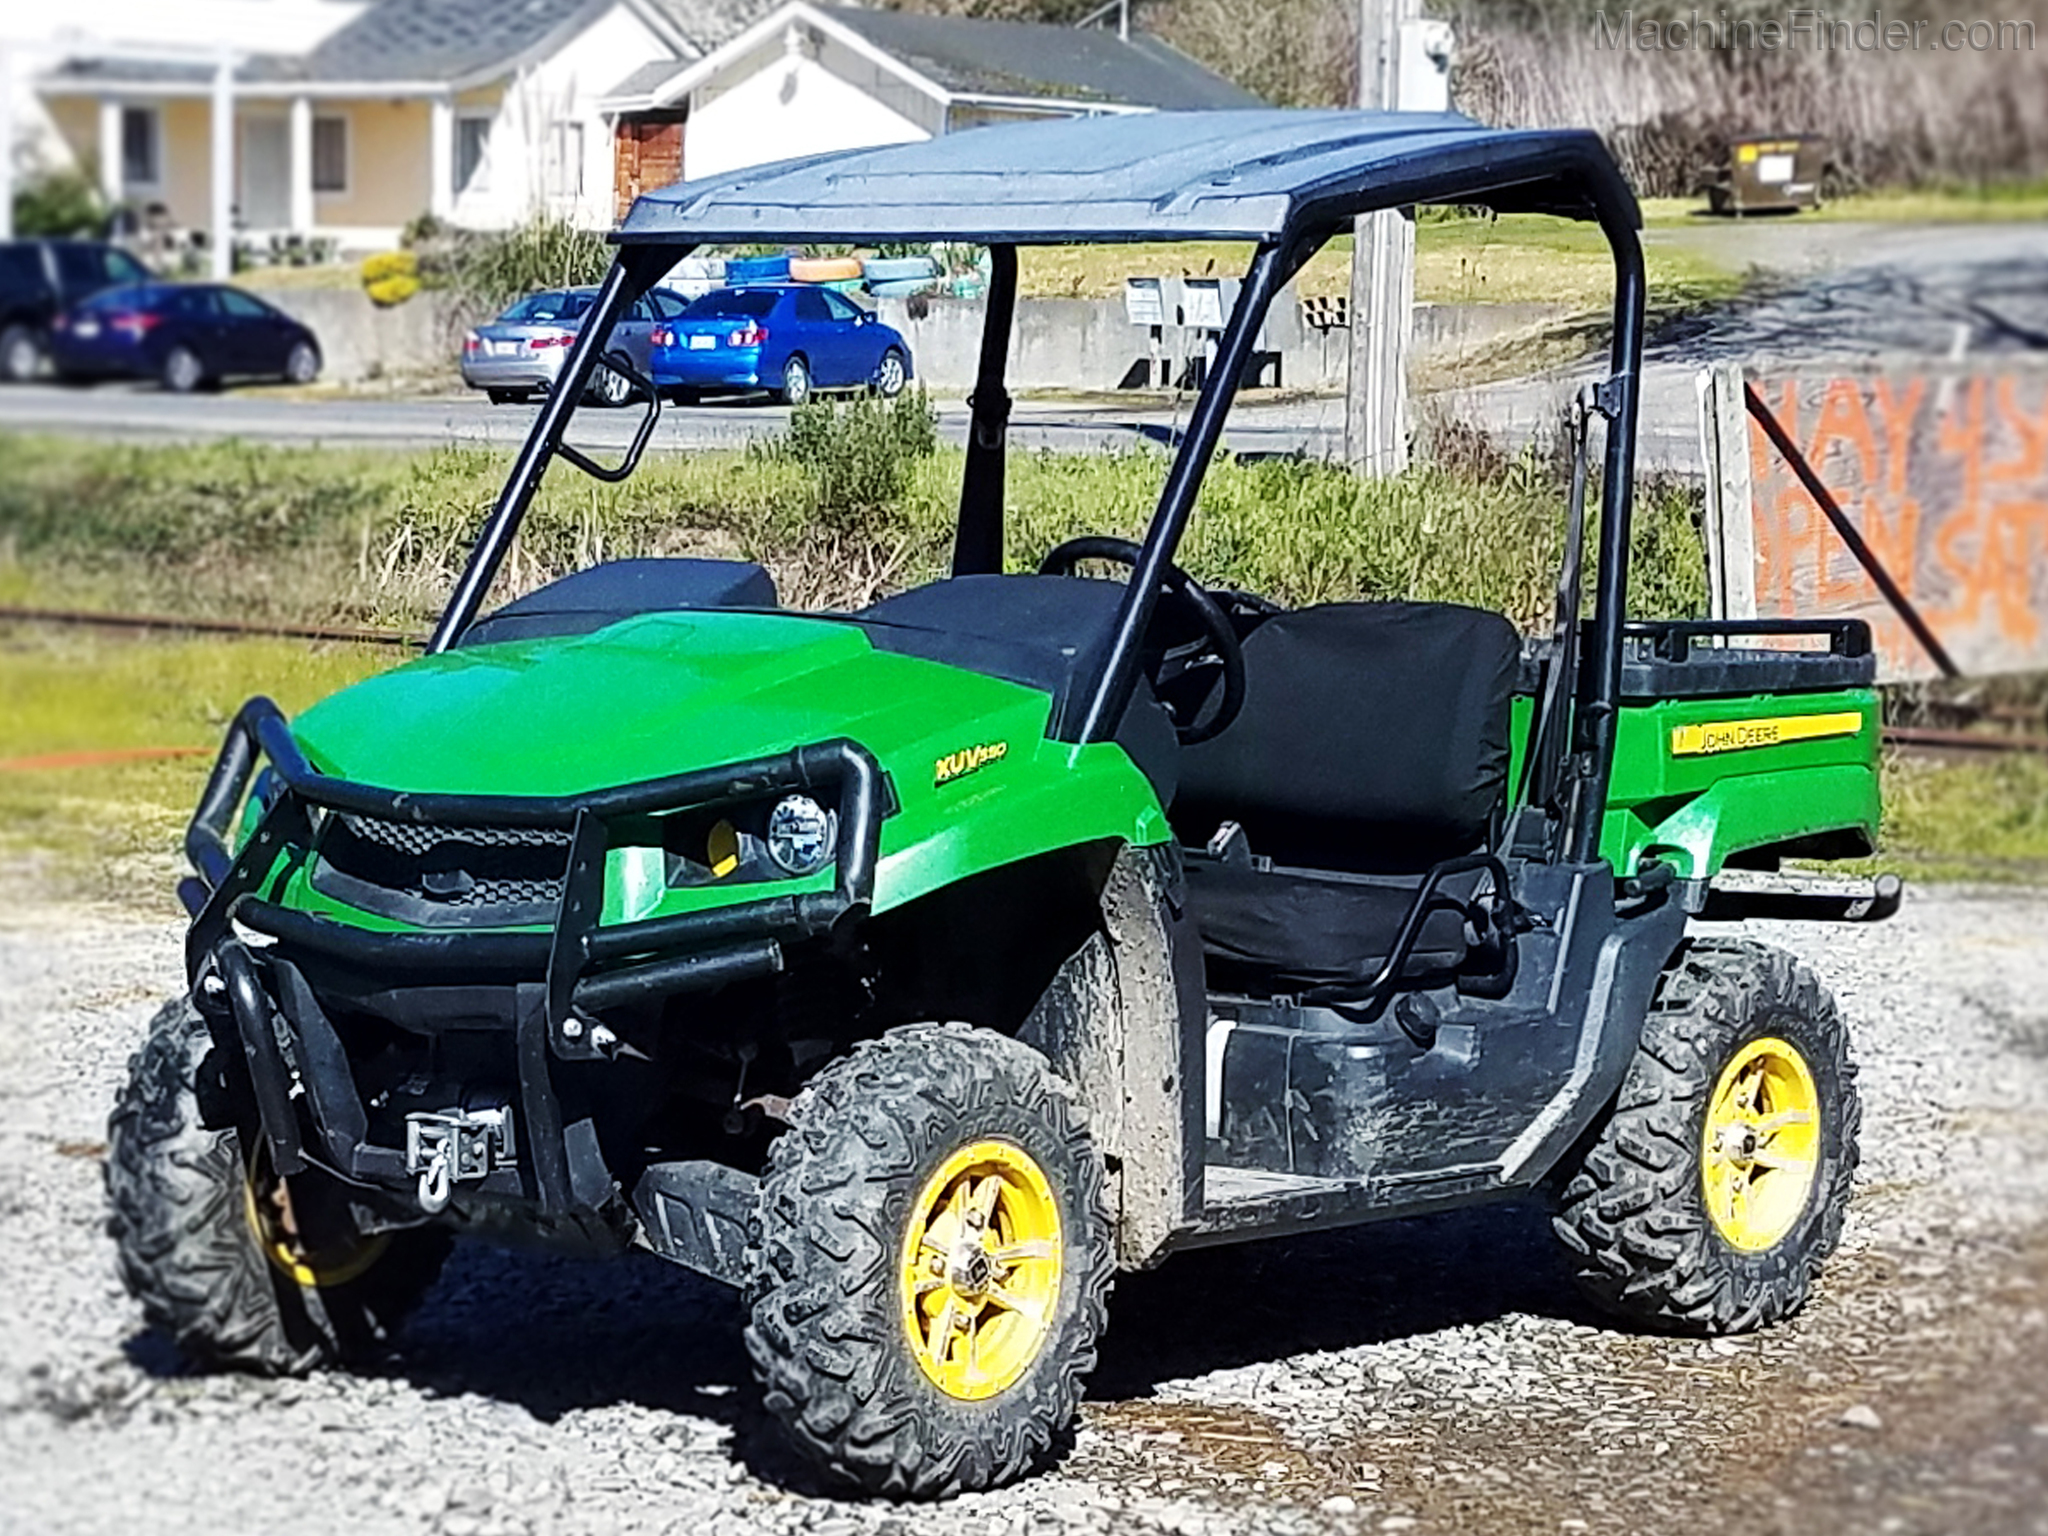 2013 John Deere XUV 550 GREEN ATVs & Gators John Deere MachineFinder